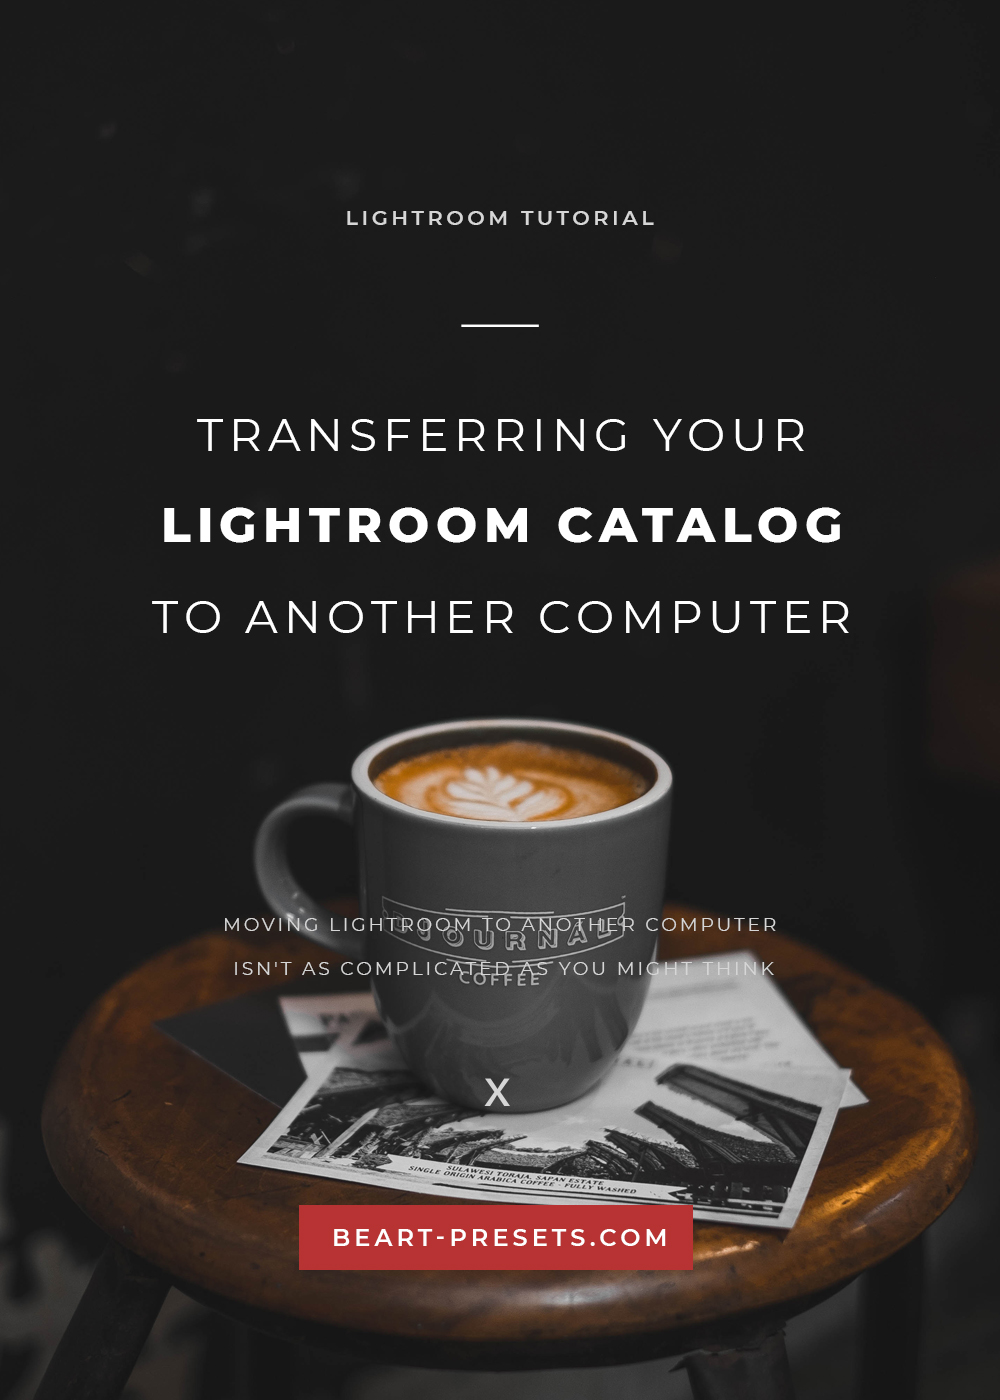 TRANSFERRING LIGHTROOM CATALOG